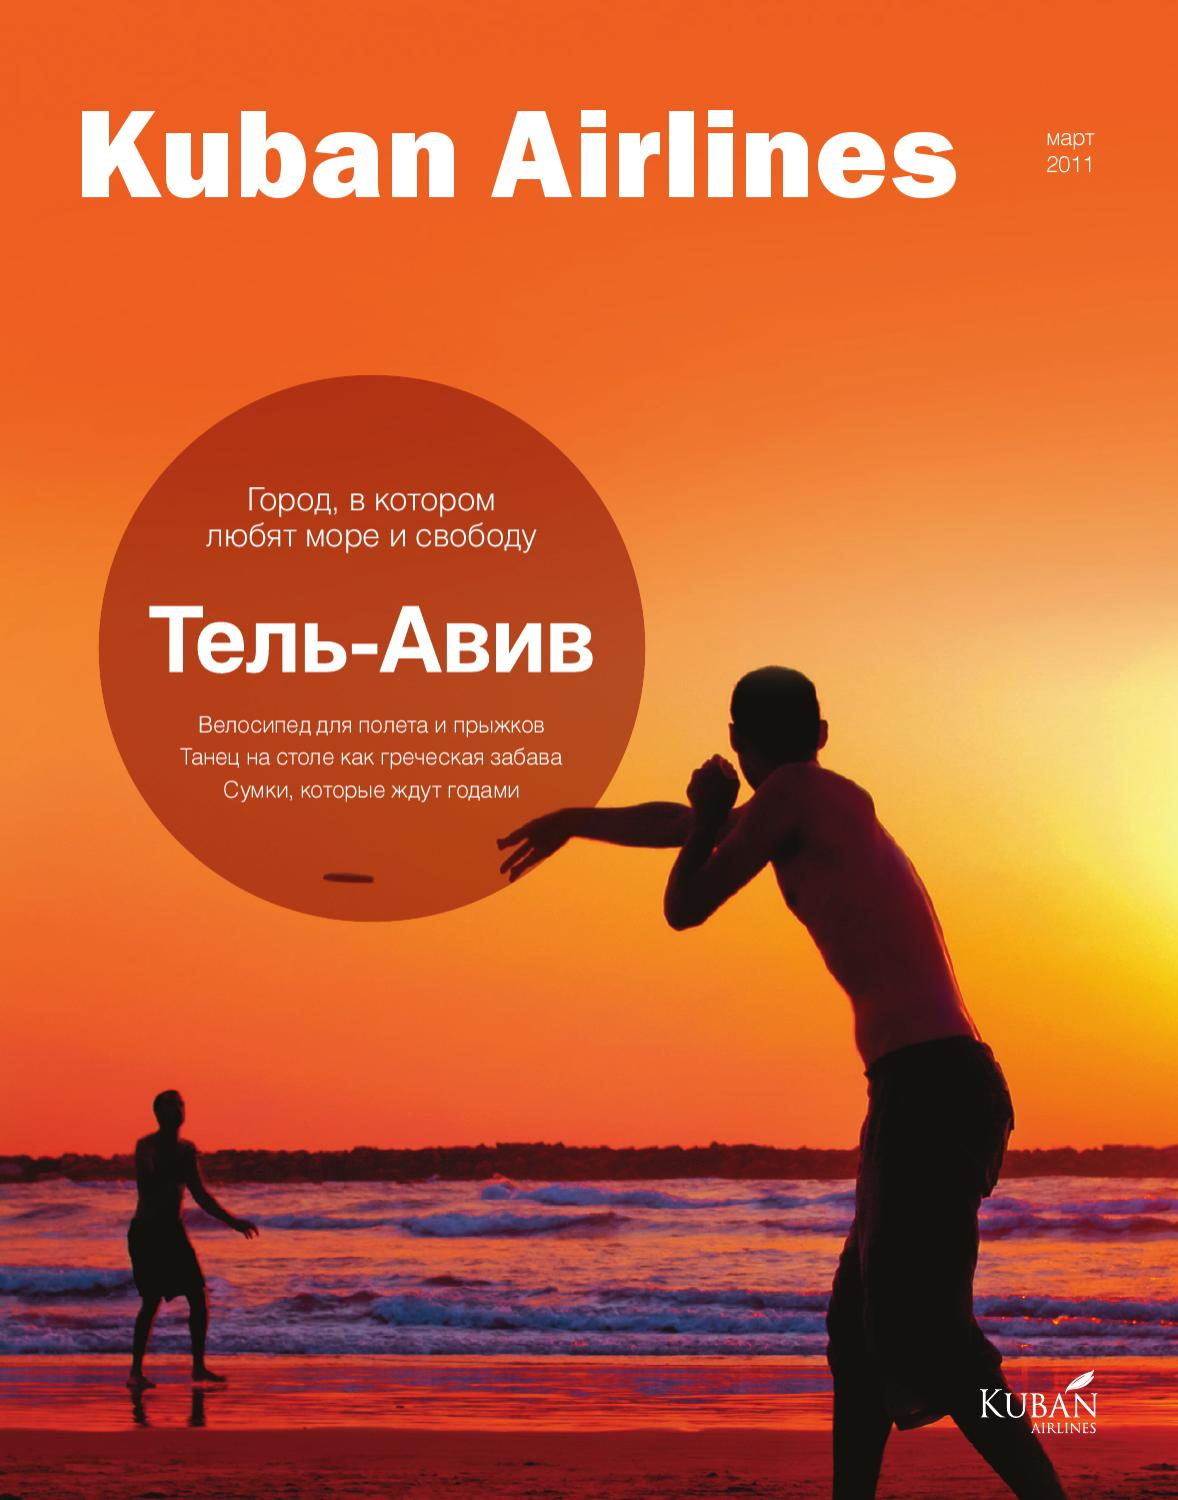 3f1e1aee747c Kuban Airlines   March 2011 by Newmen - issuu